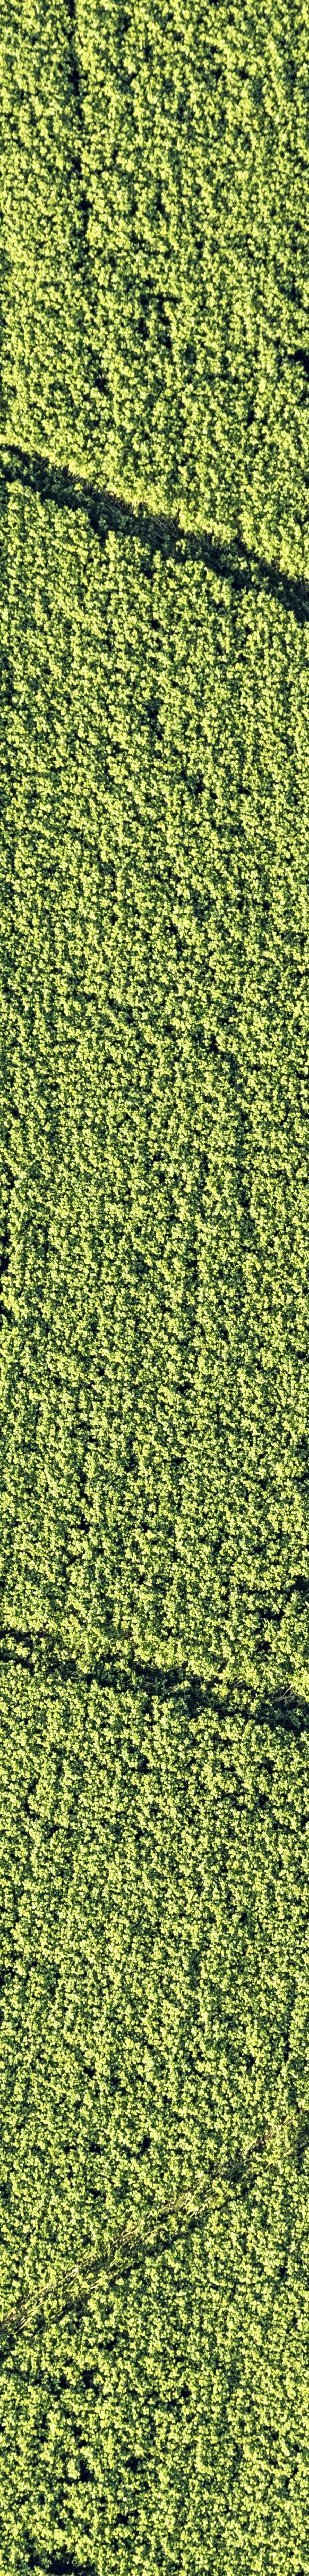 Aerial view of farm painting near Zulling - Klaus Leidorf Aerial Photography